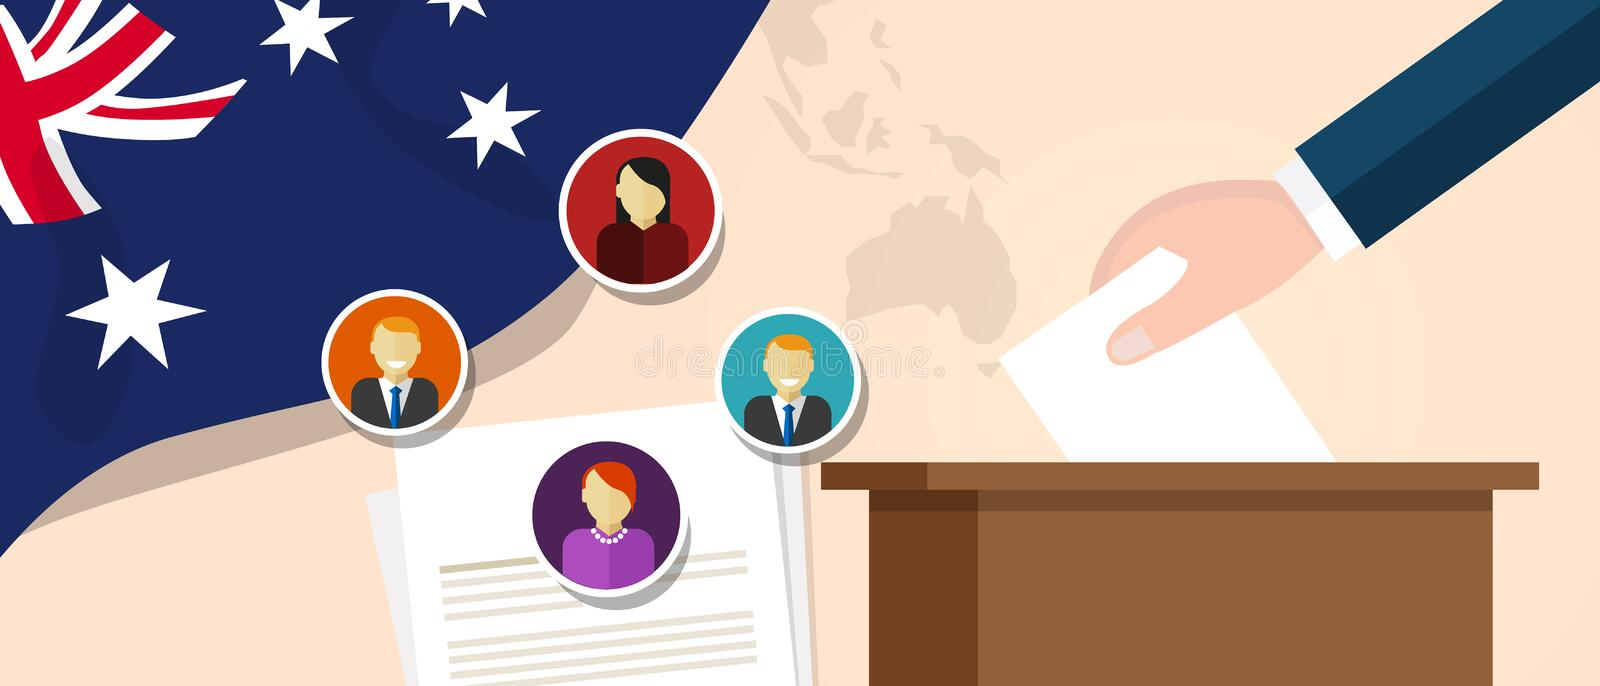 Australia democracy political process selecting president or parliament member with election and referendum freedom to. Vote vector vector illustration